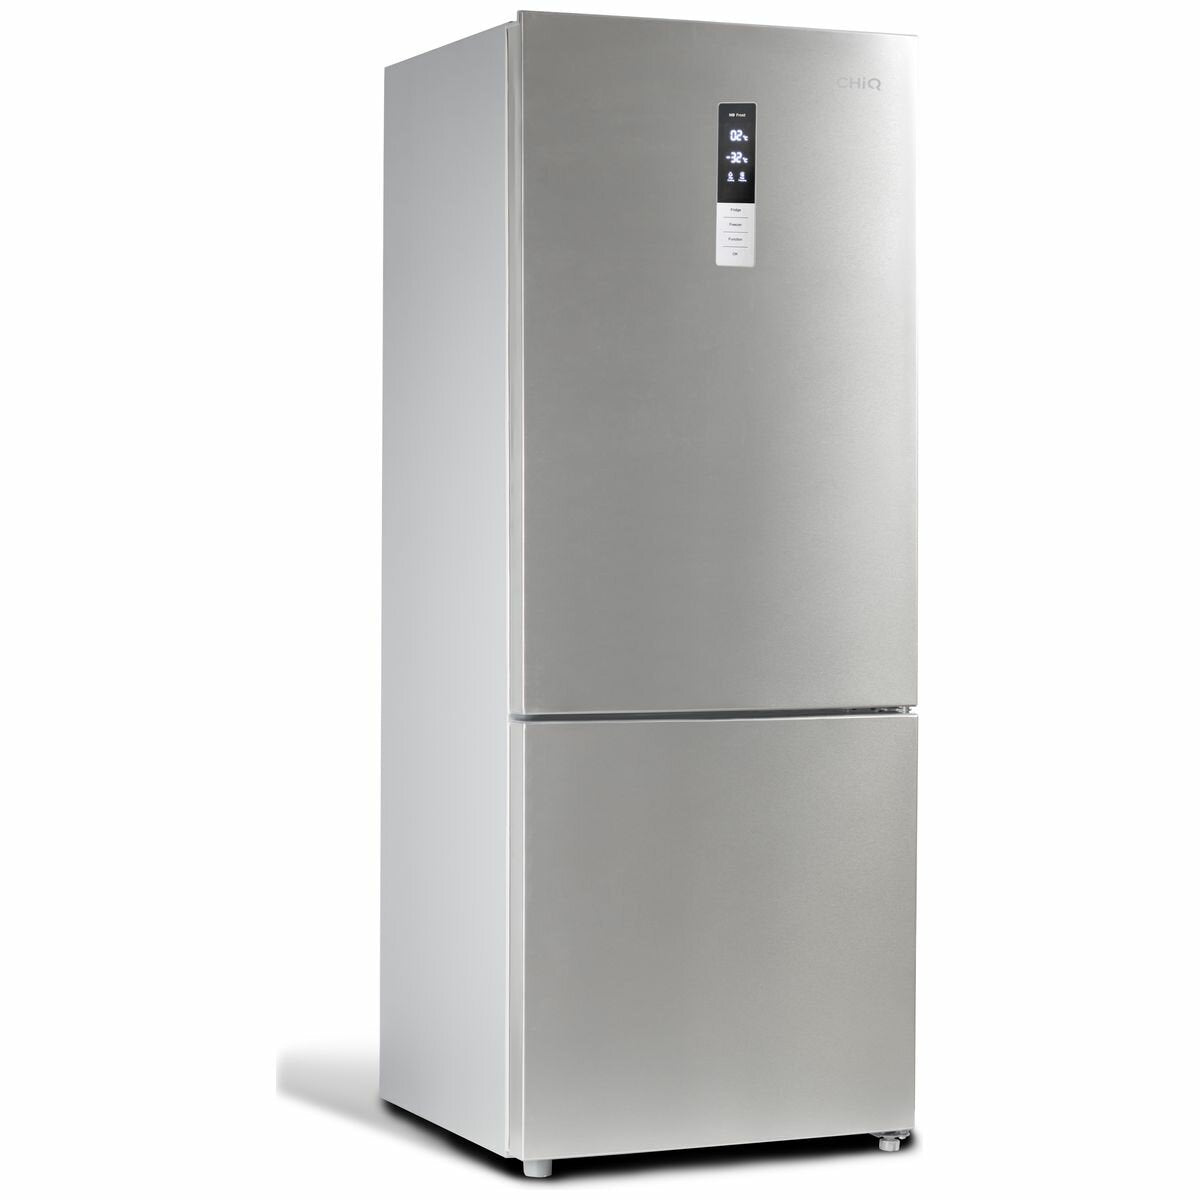 CHIQ CBM431S 432L Bottom Mount Fridge